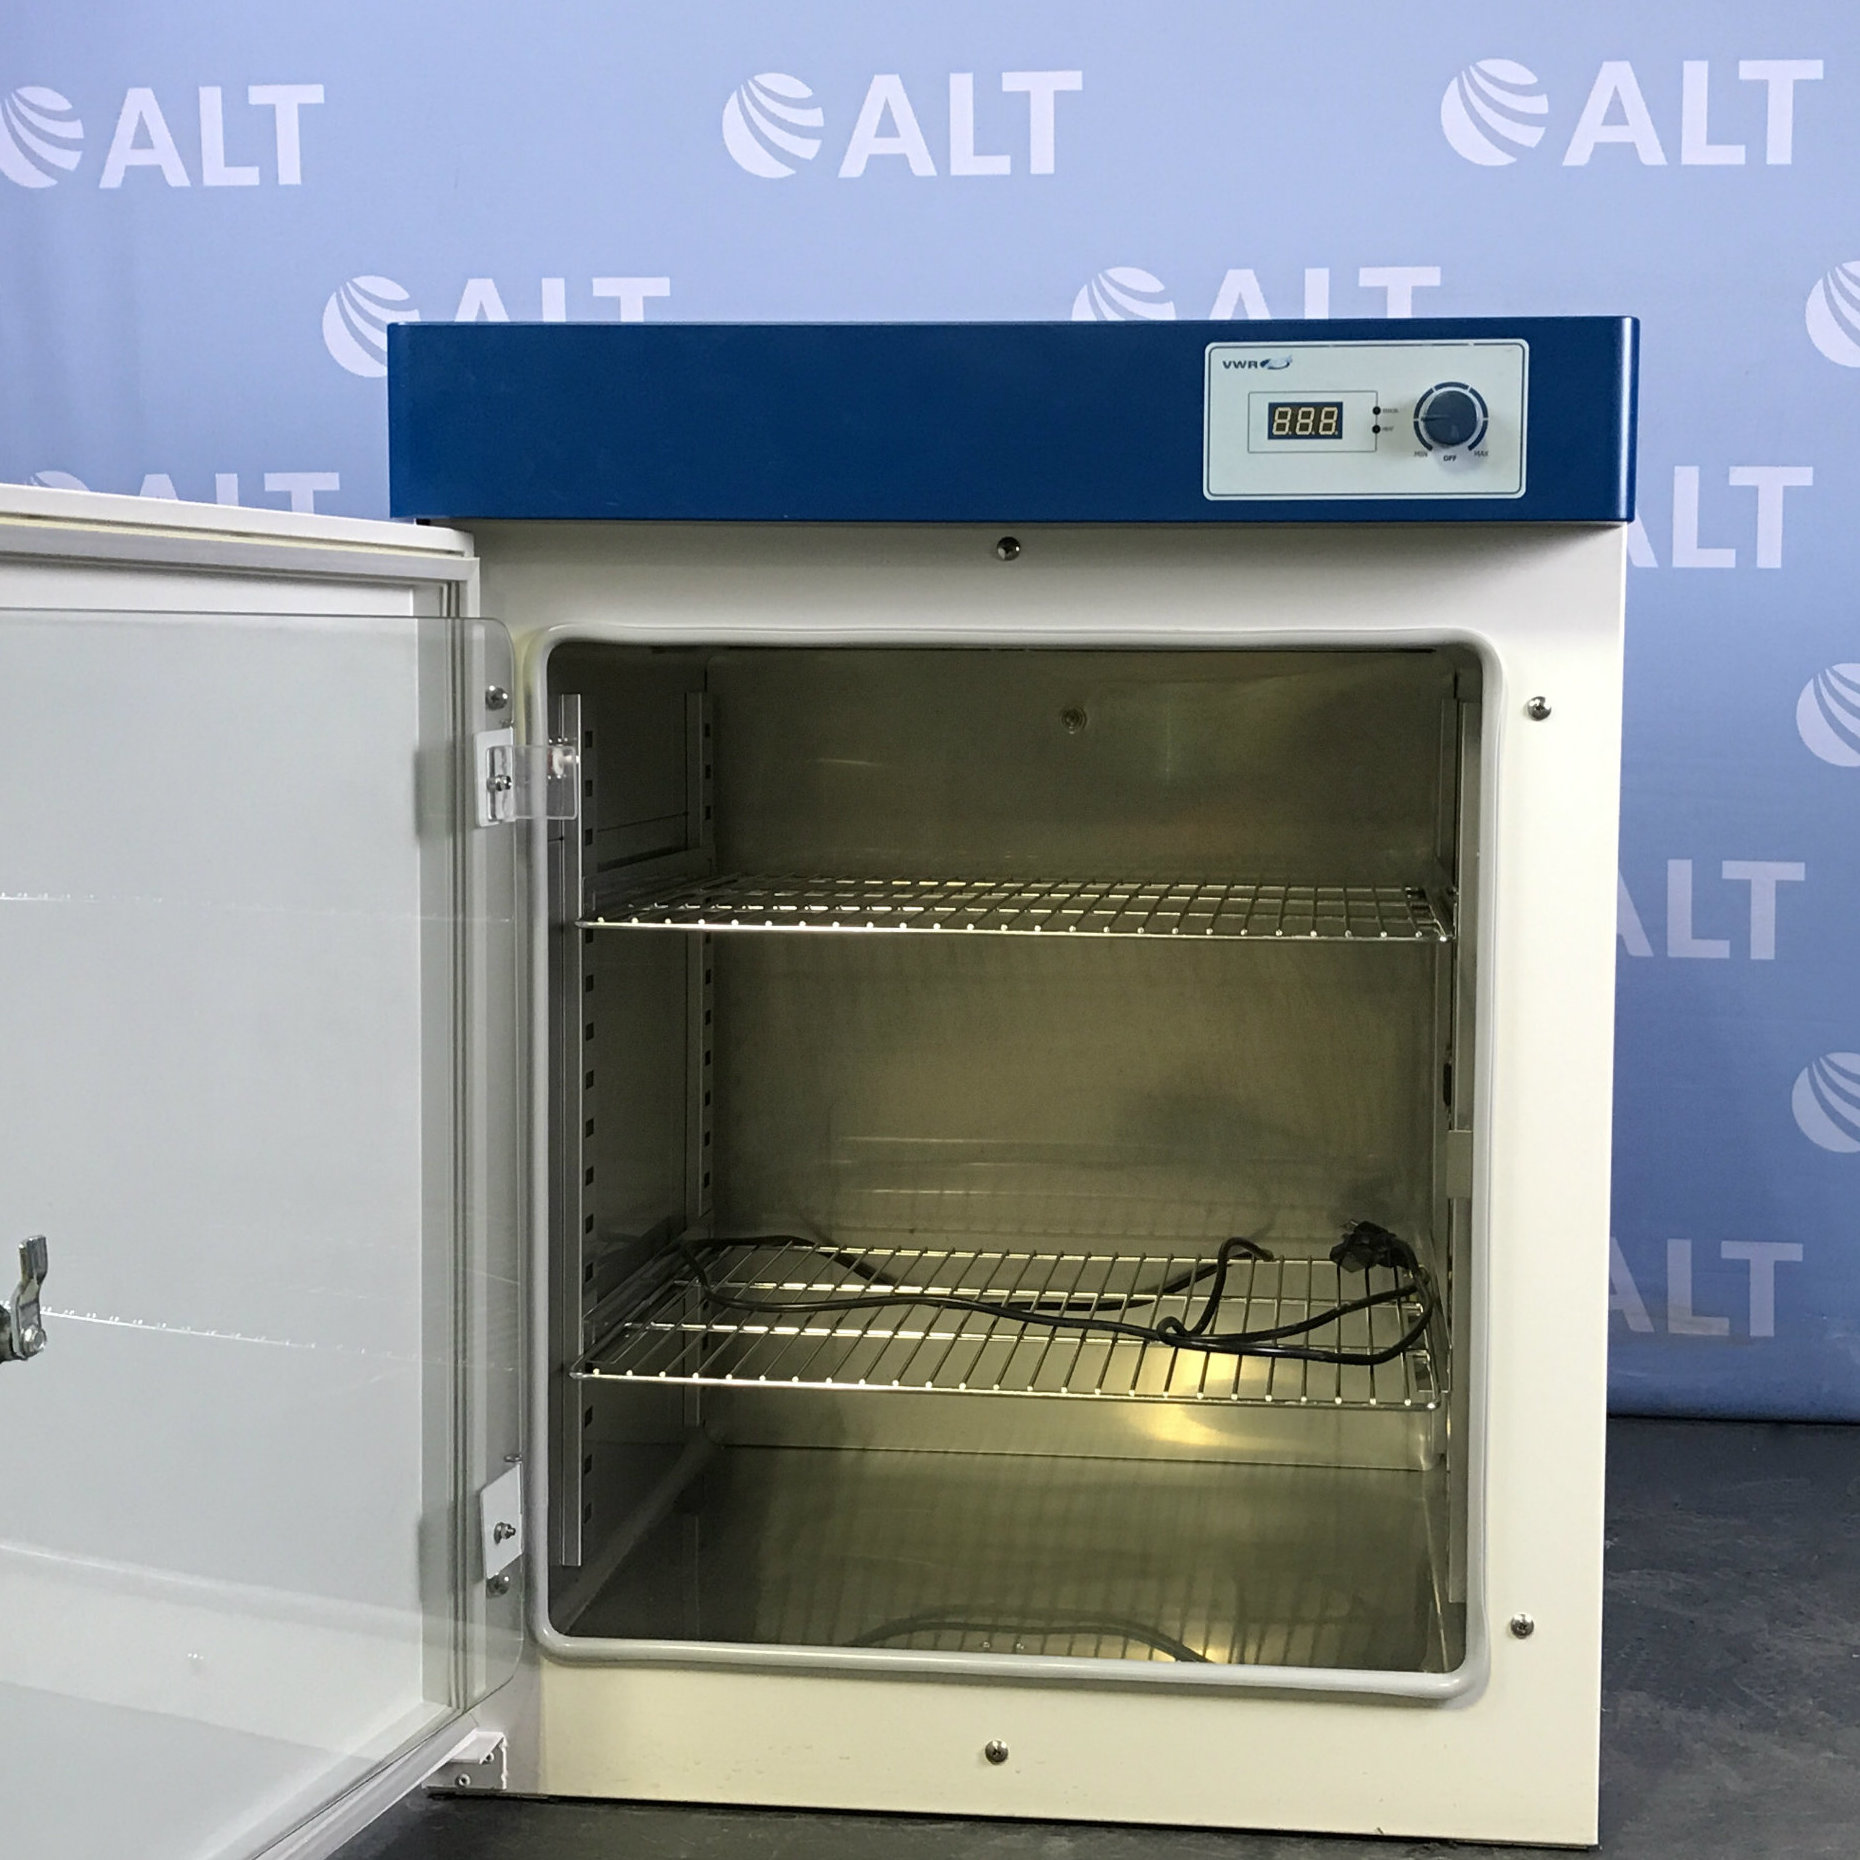 VWR 414004-624 Gravity Convection Incubator Image